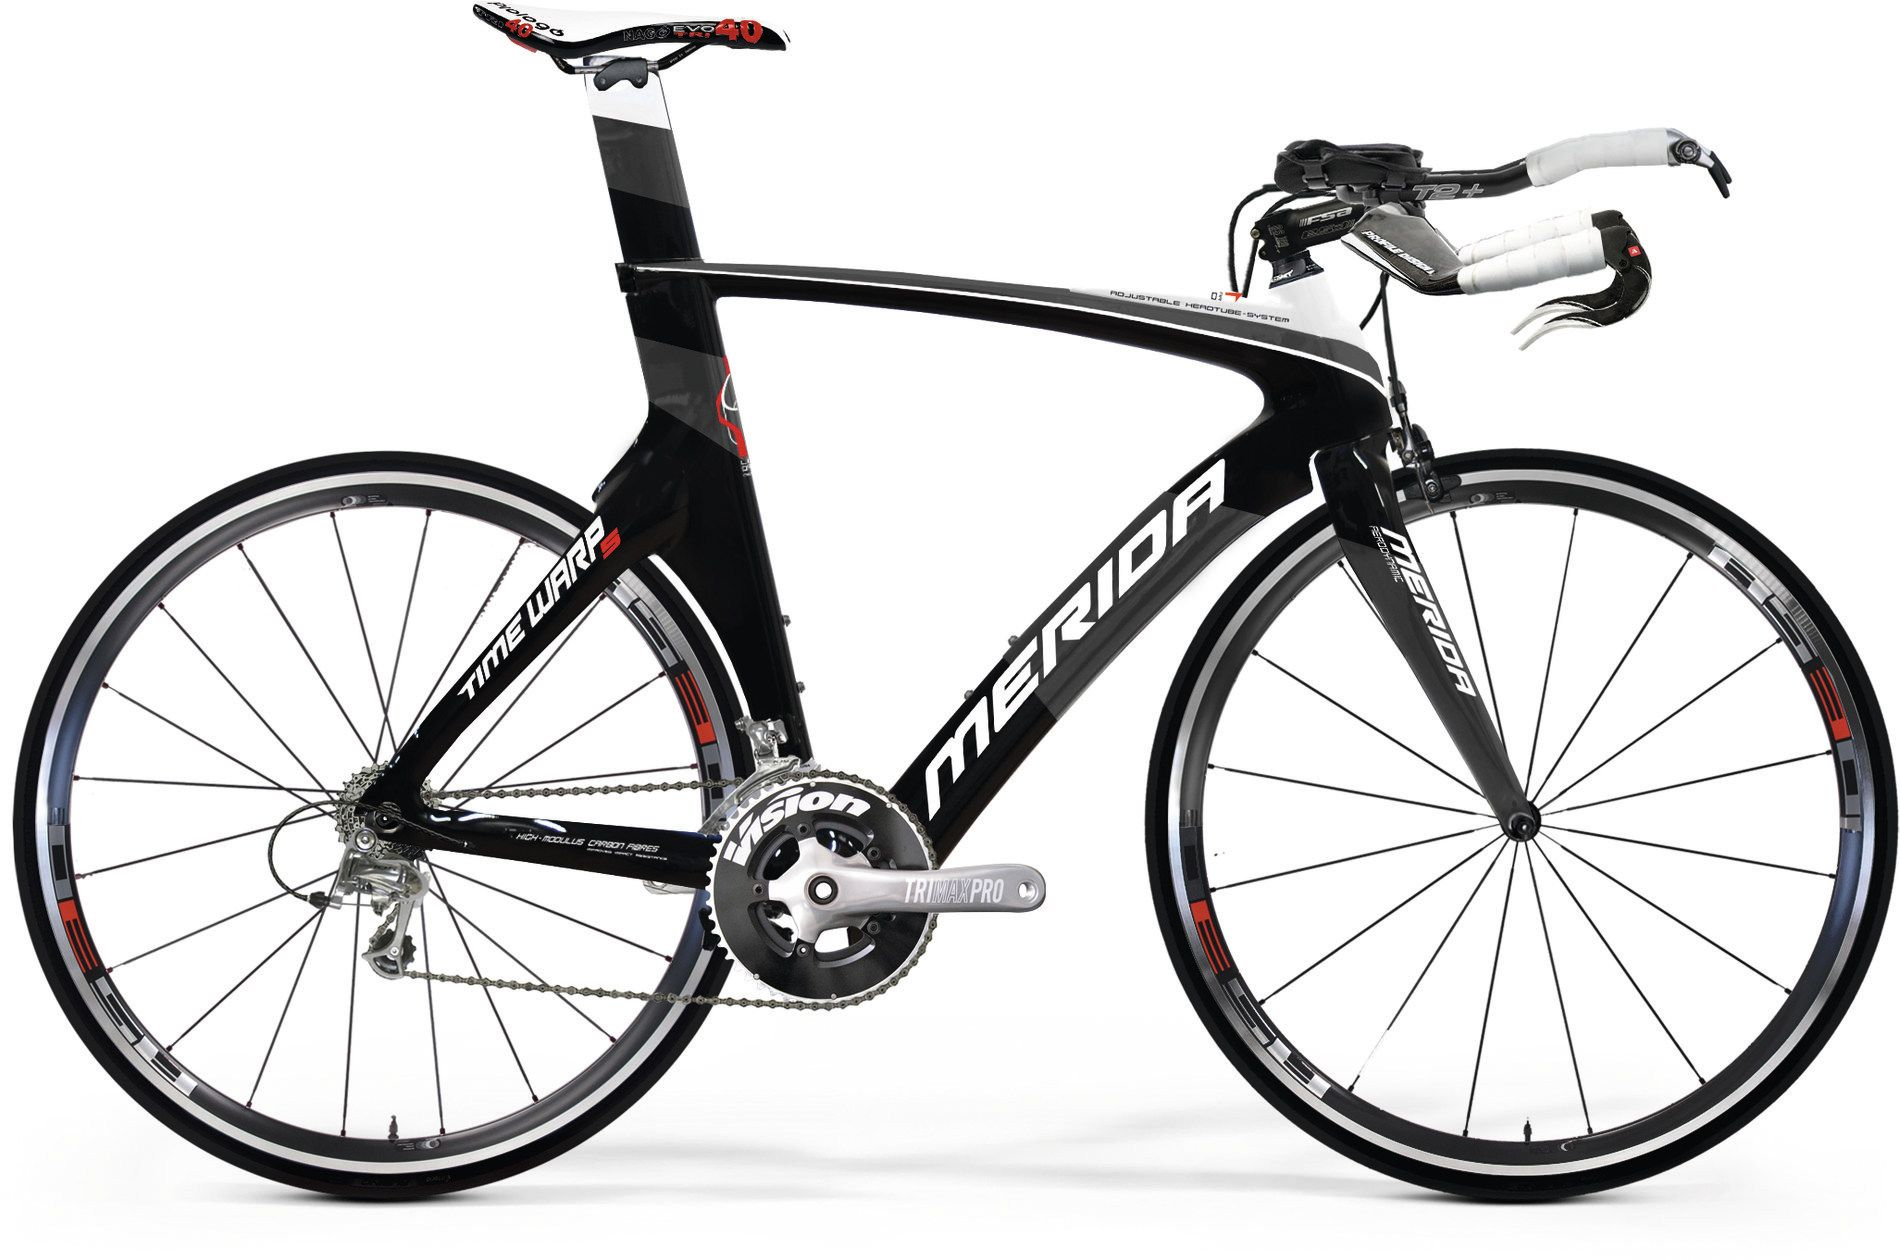 Road/Fitness - Triathlon - Time Warp 5 - Merida Bikes